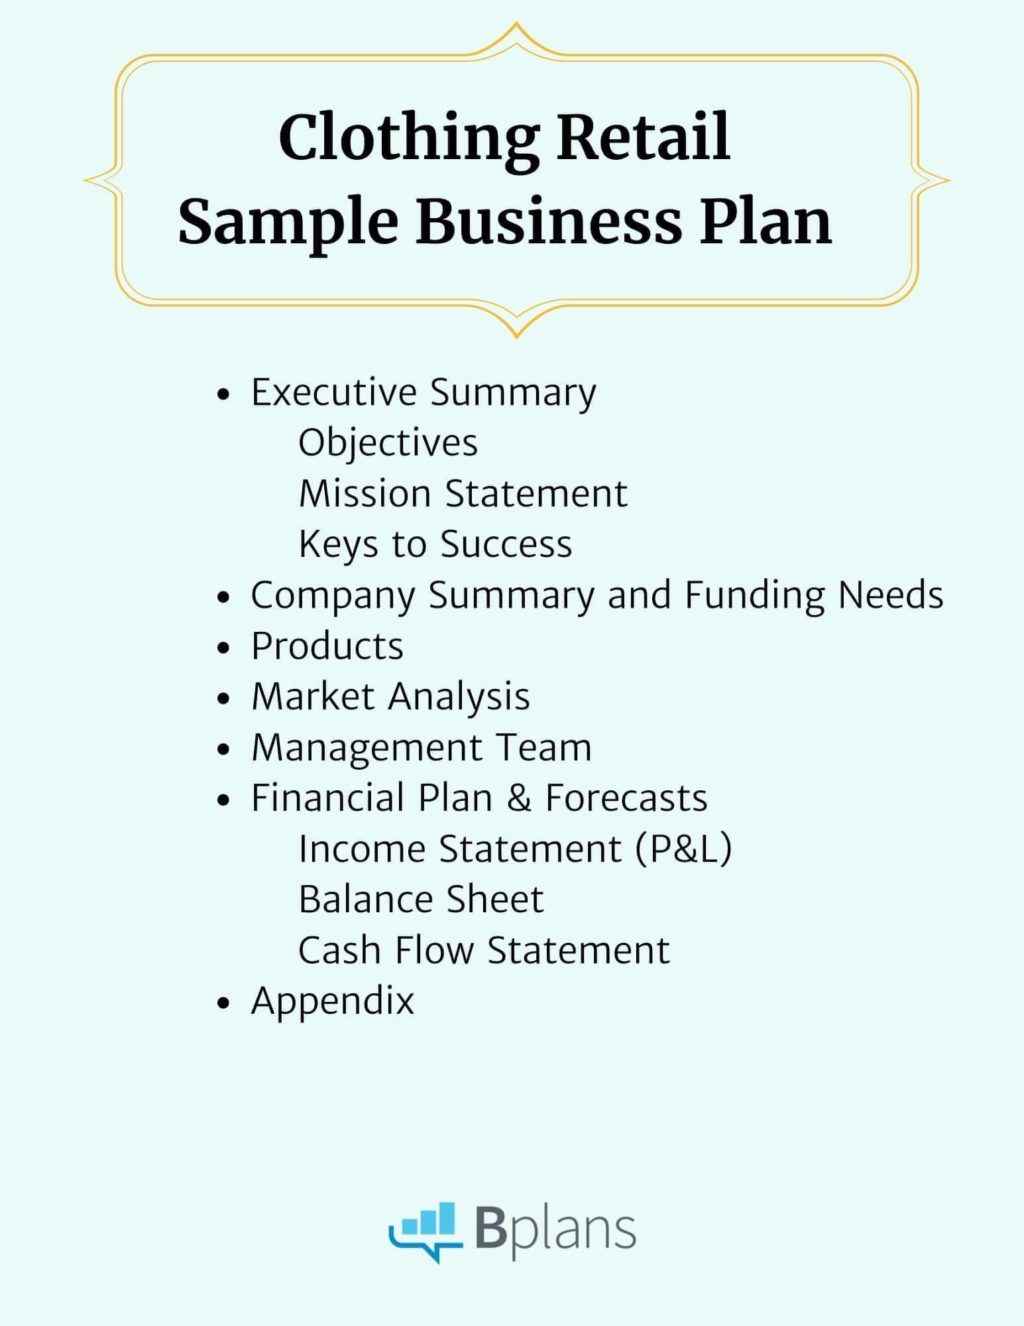 Boutique Business Plan Template Clothing Retail Sample Business Plan Marie Mas Business Plan Template Word One Page Business Plan Business Plan Template Free